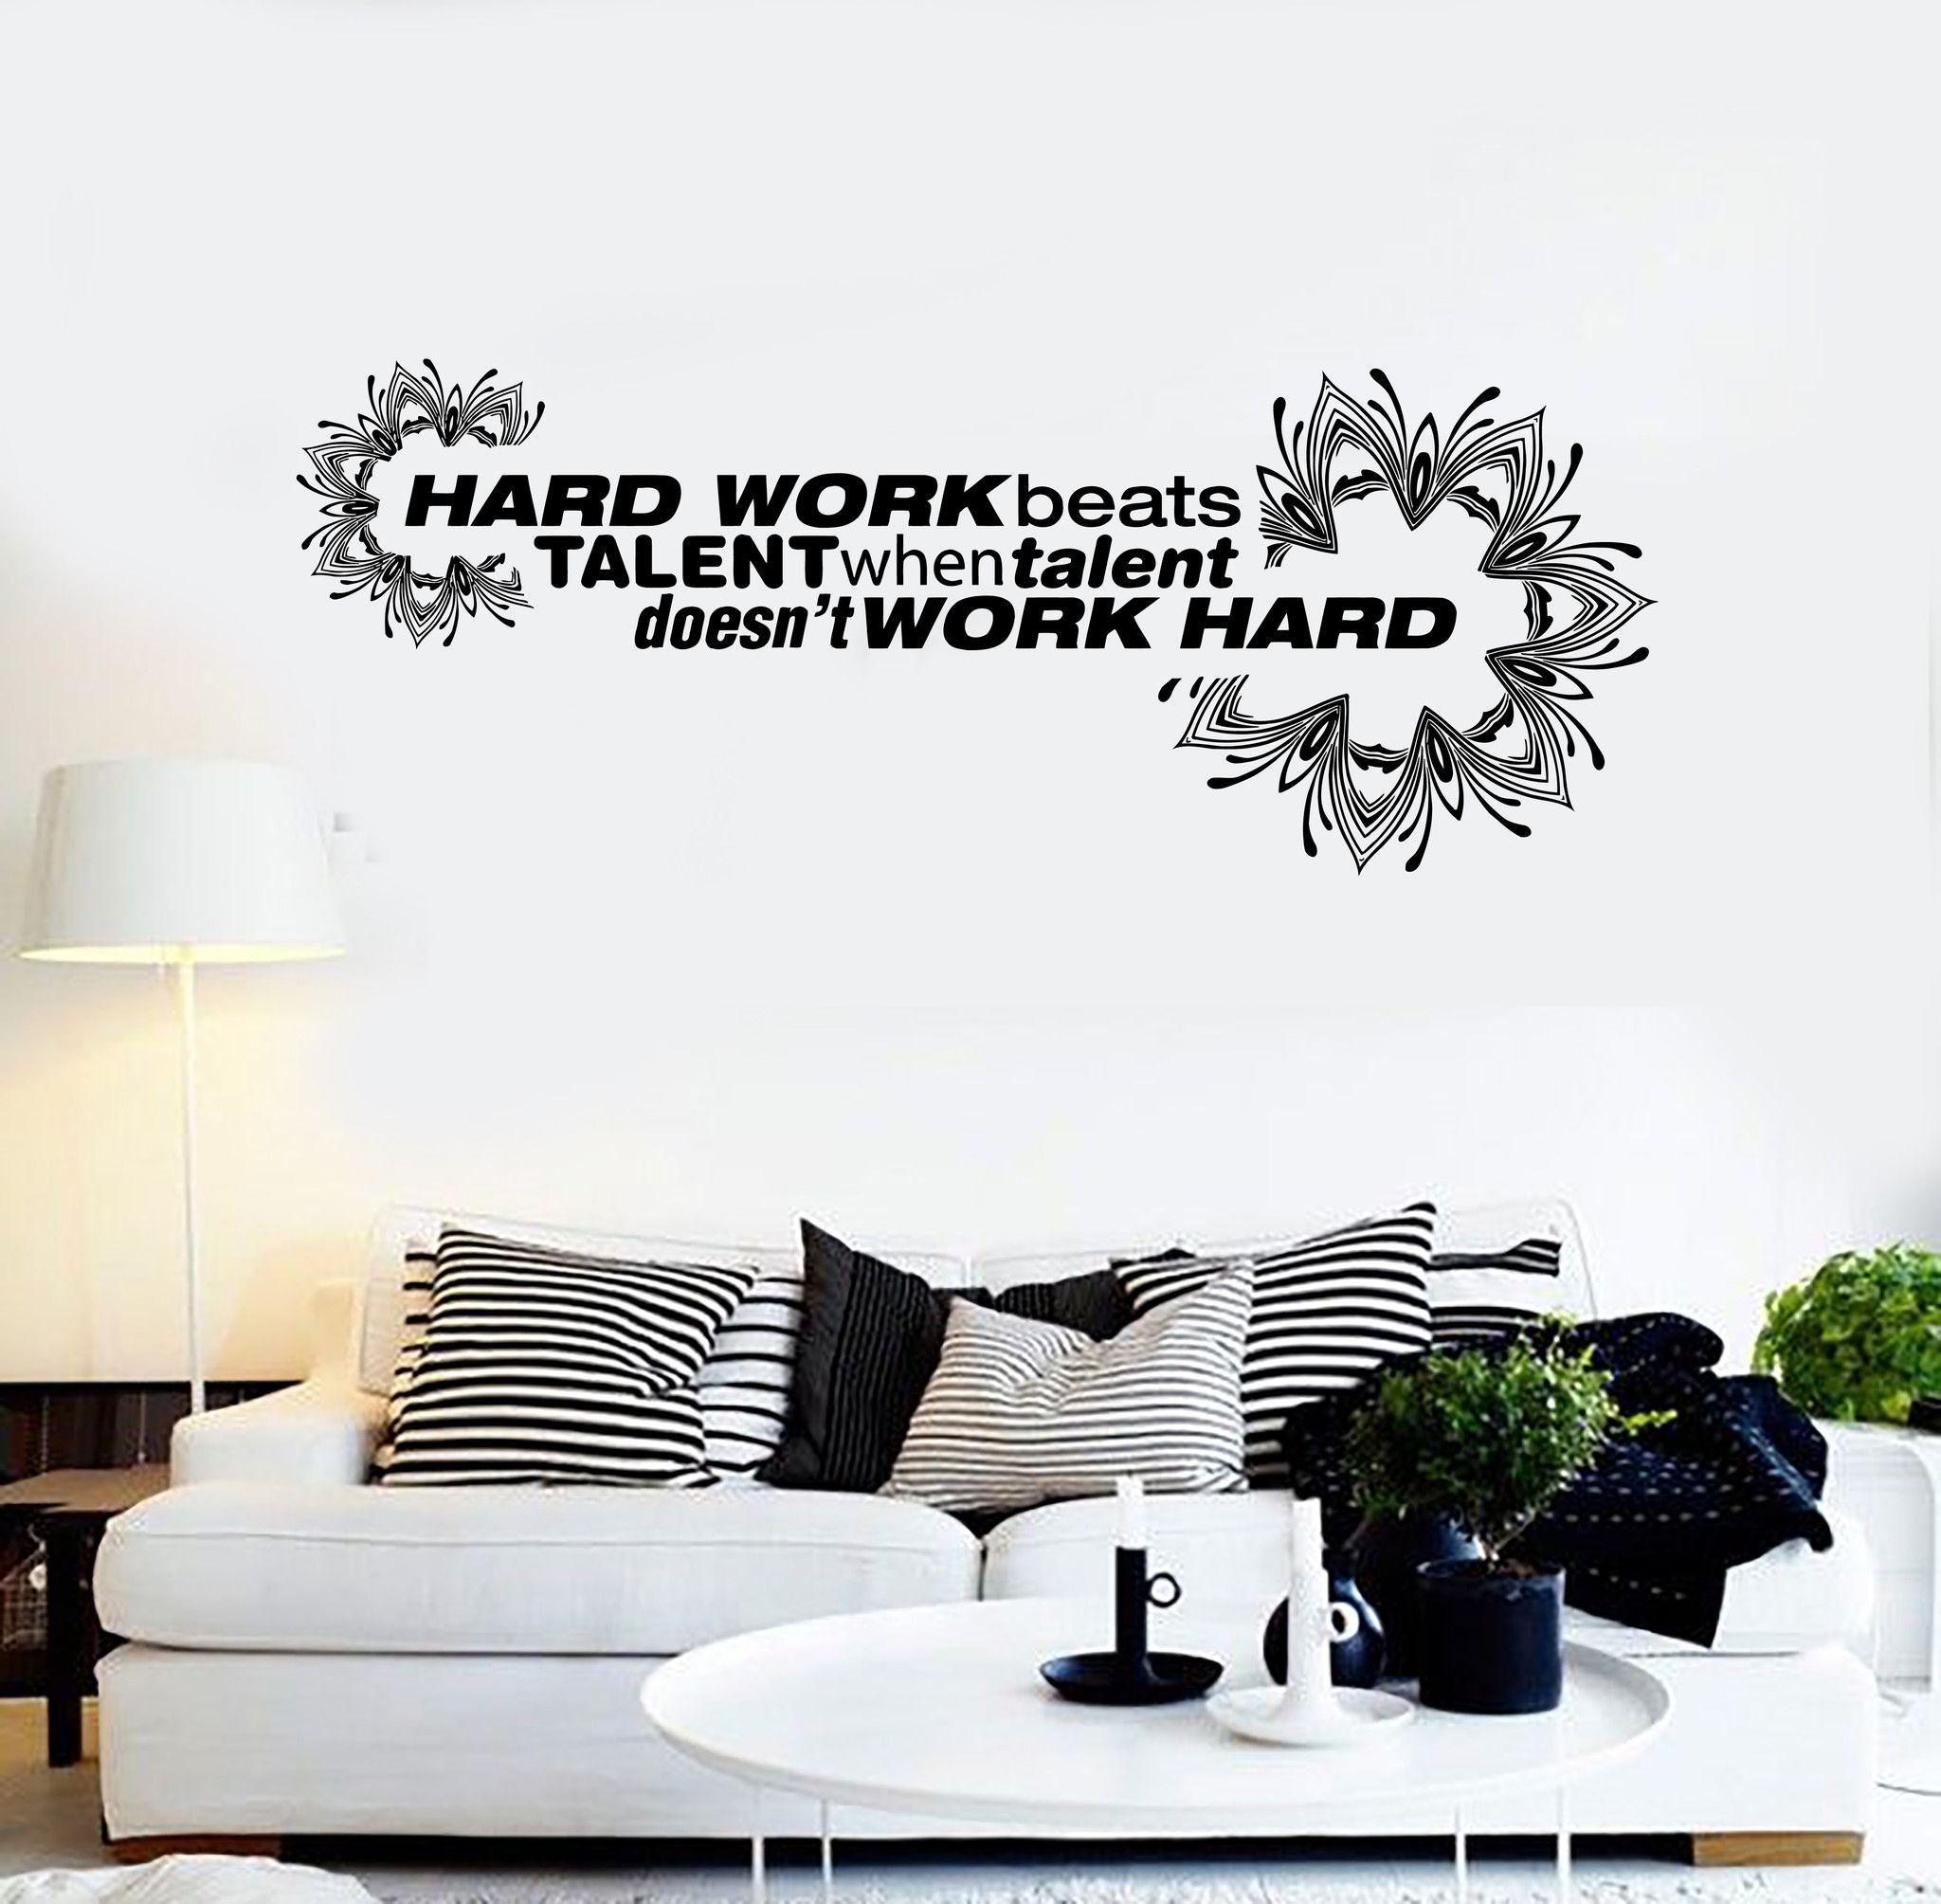 Vinyl Wall Decal Office Quote Hard Work Motivation Decoration